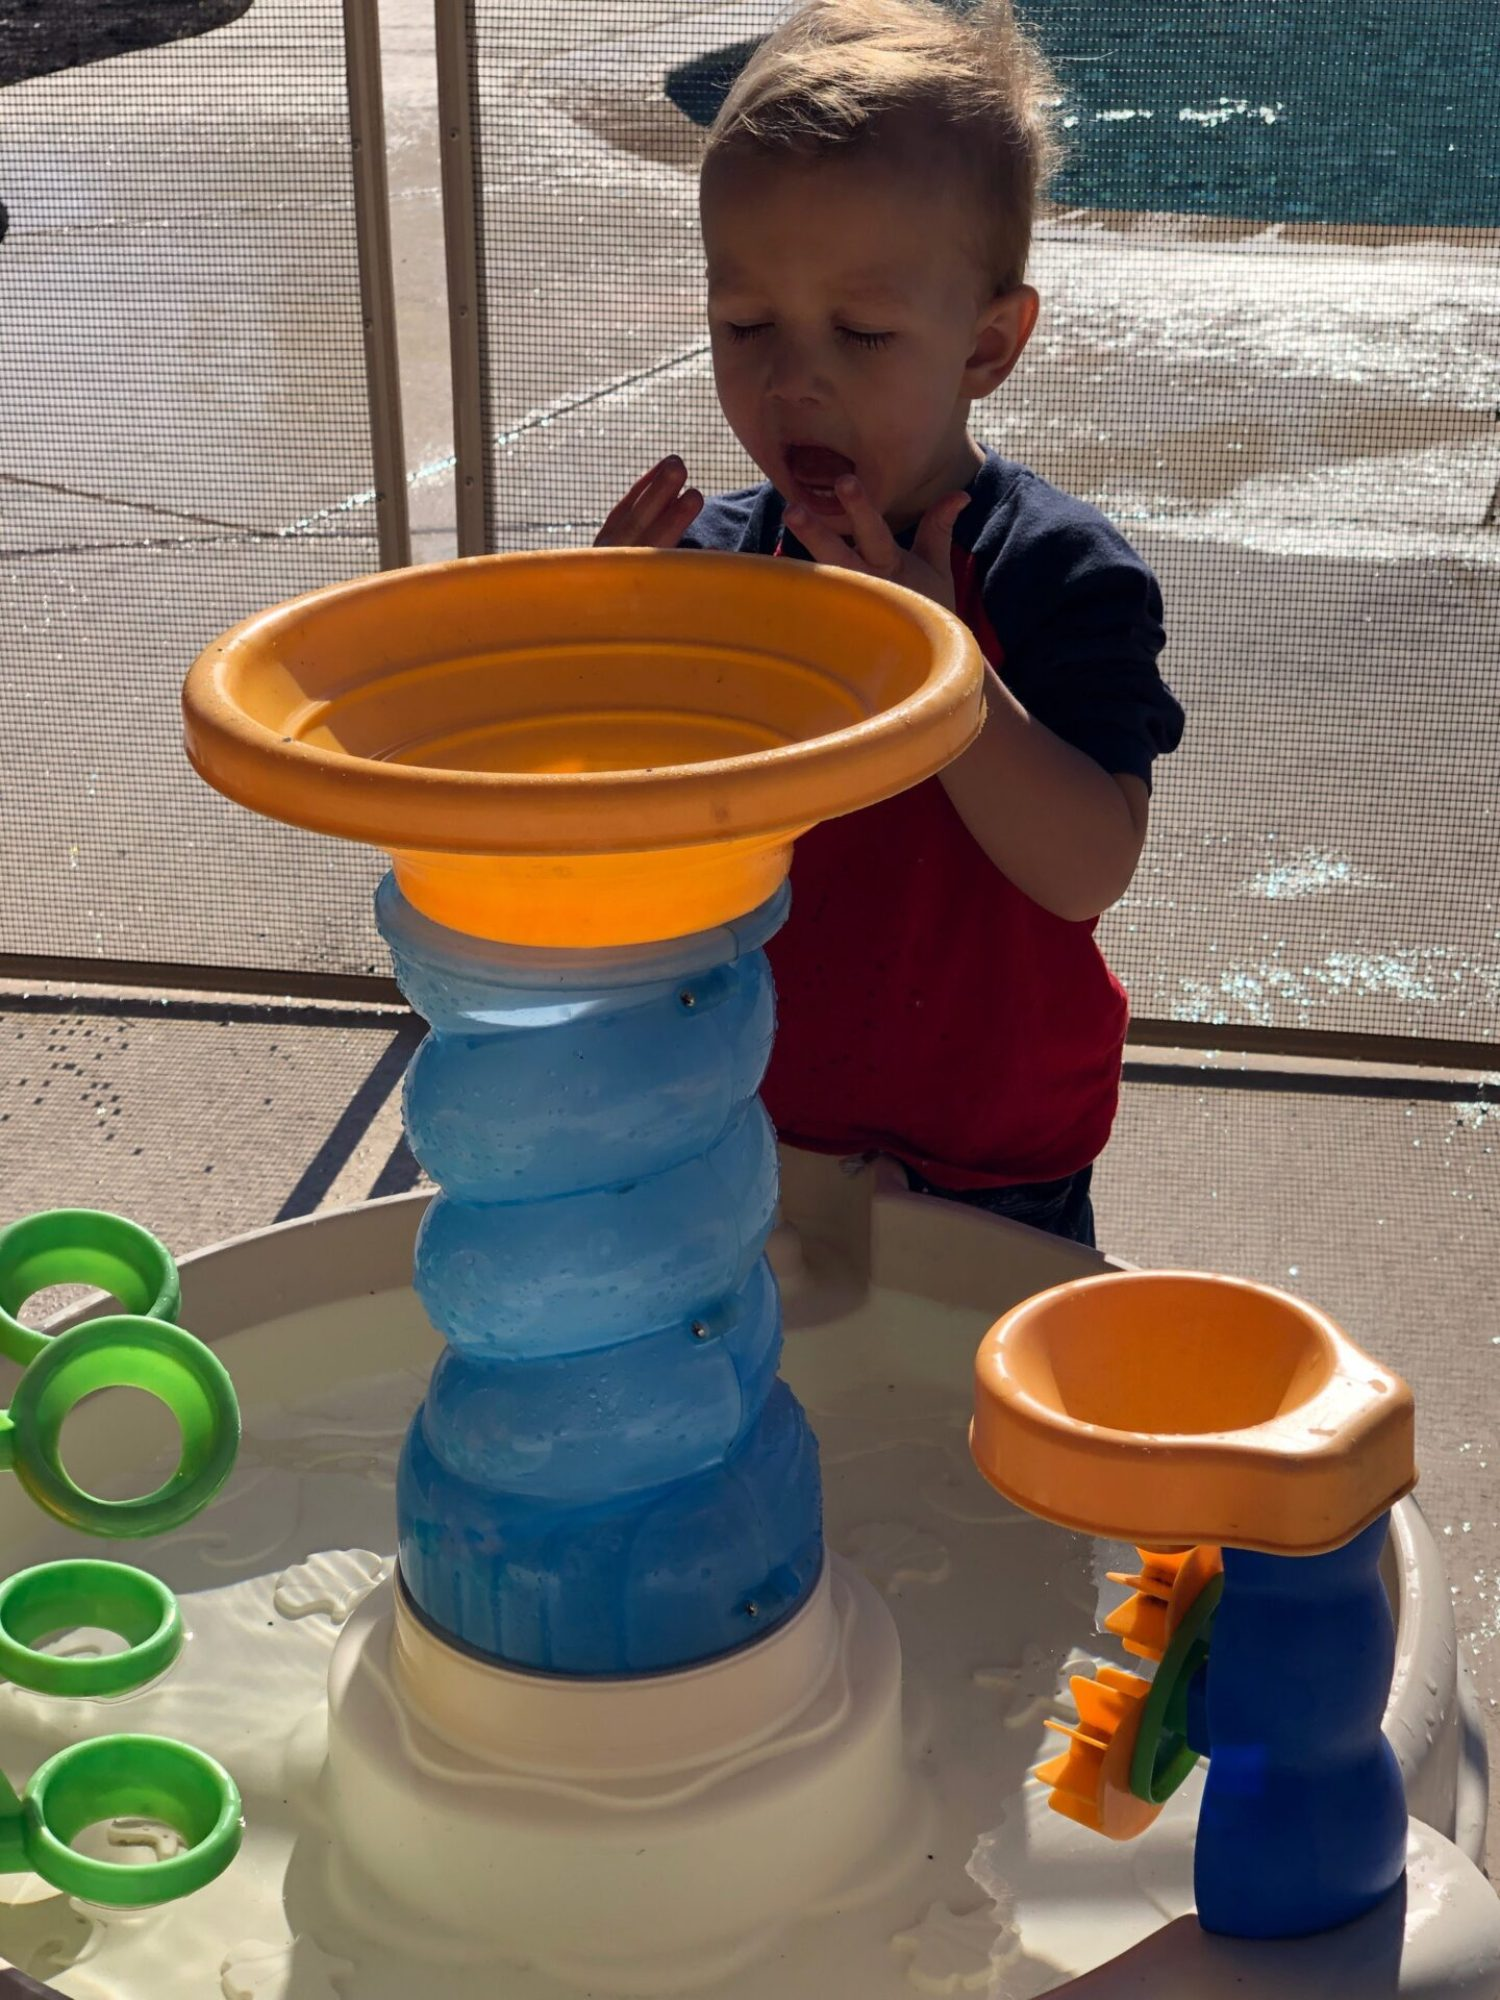 water table with toddler boy